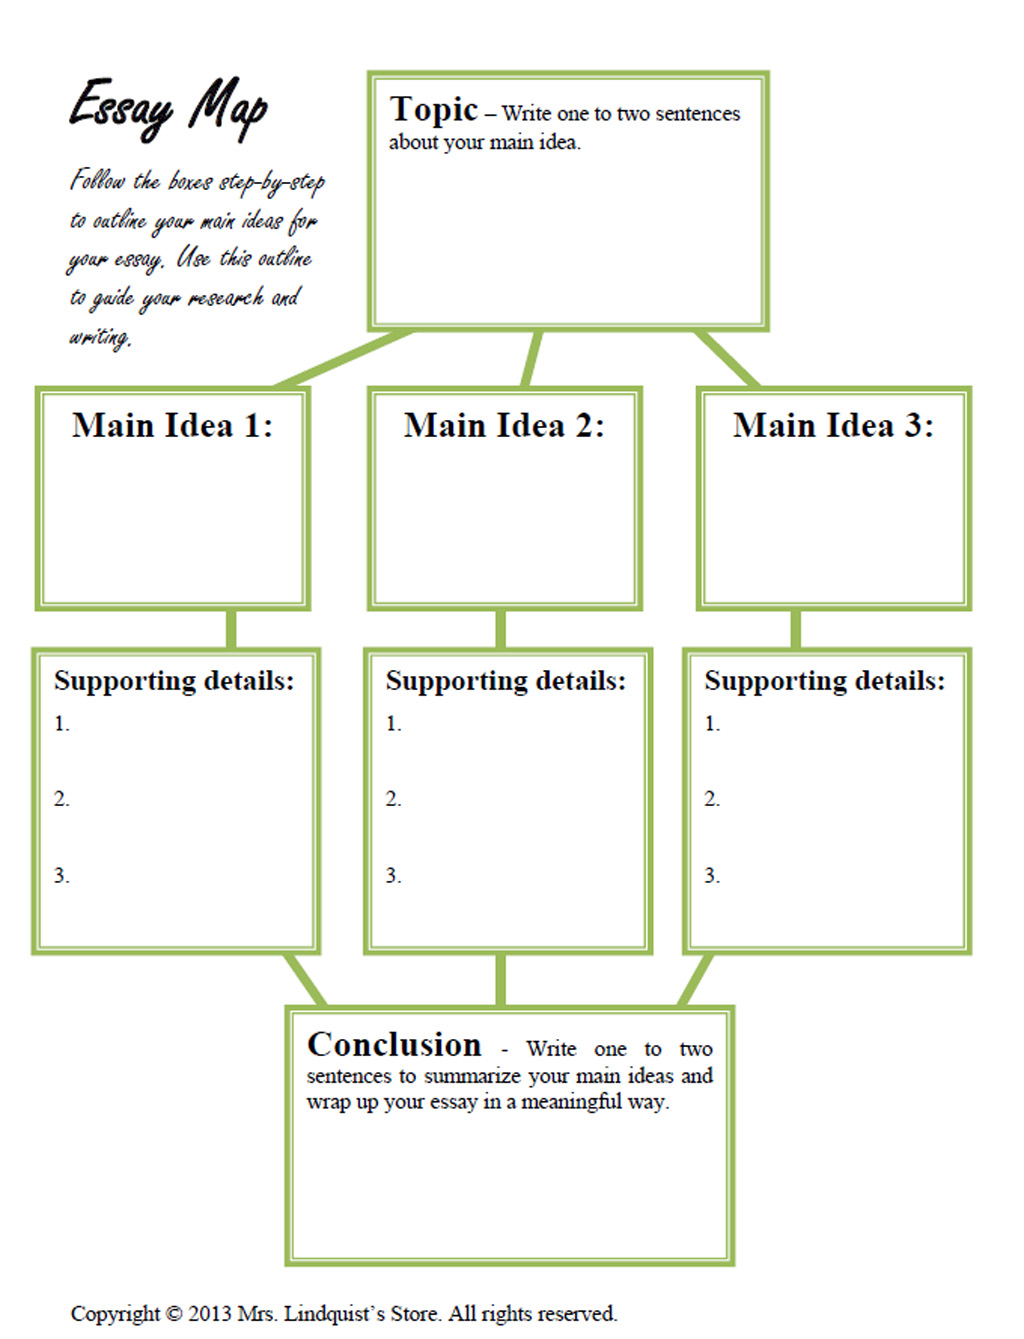 persuasive writing graphic organizer for middle school persuasive writing graphic organizer for middle school persuasive writing worksheetsworksheets expository persuasive writing casa de